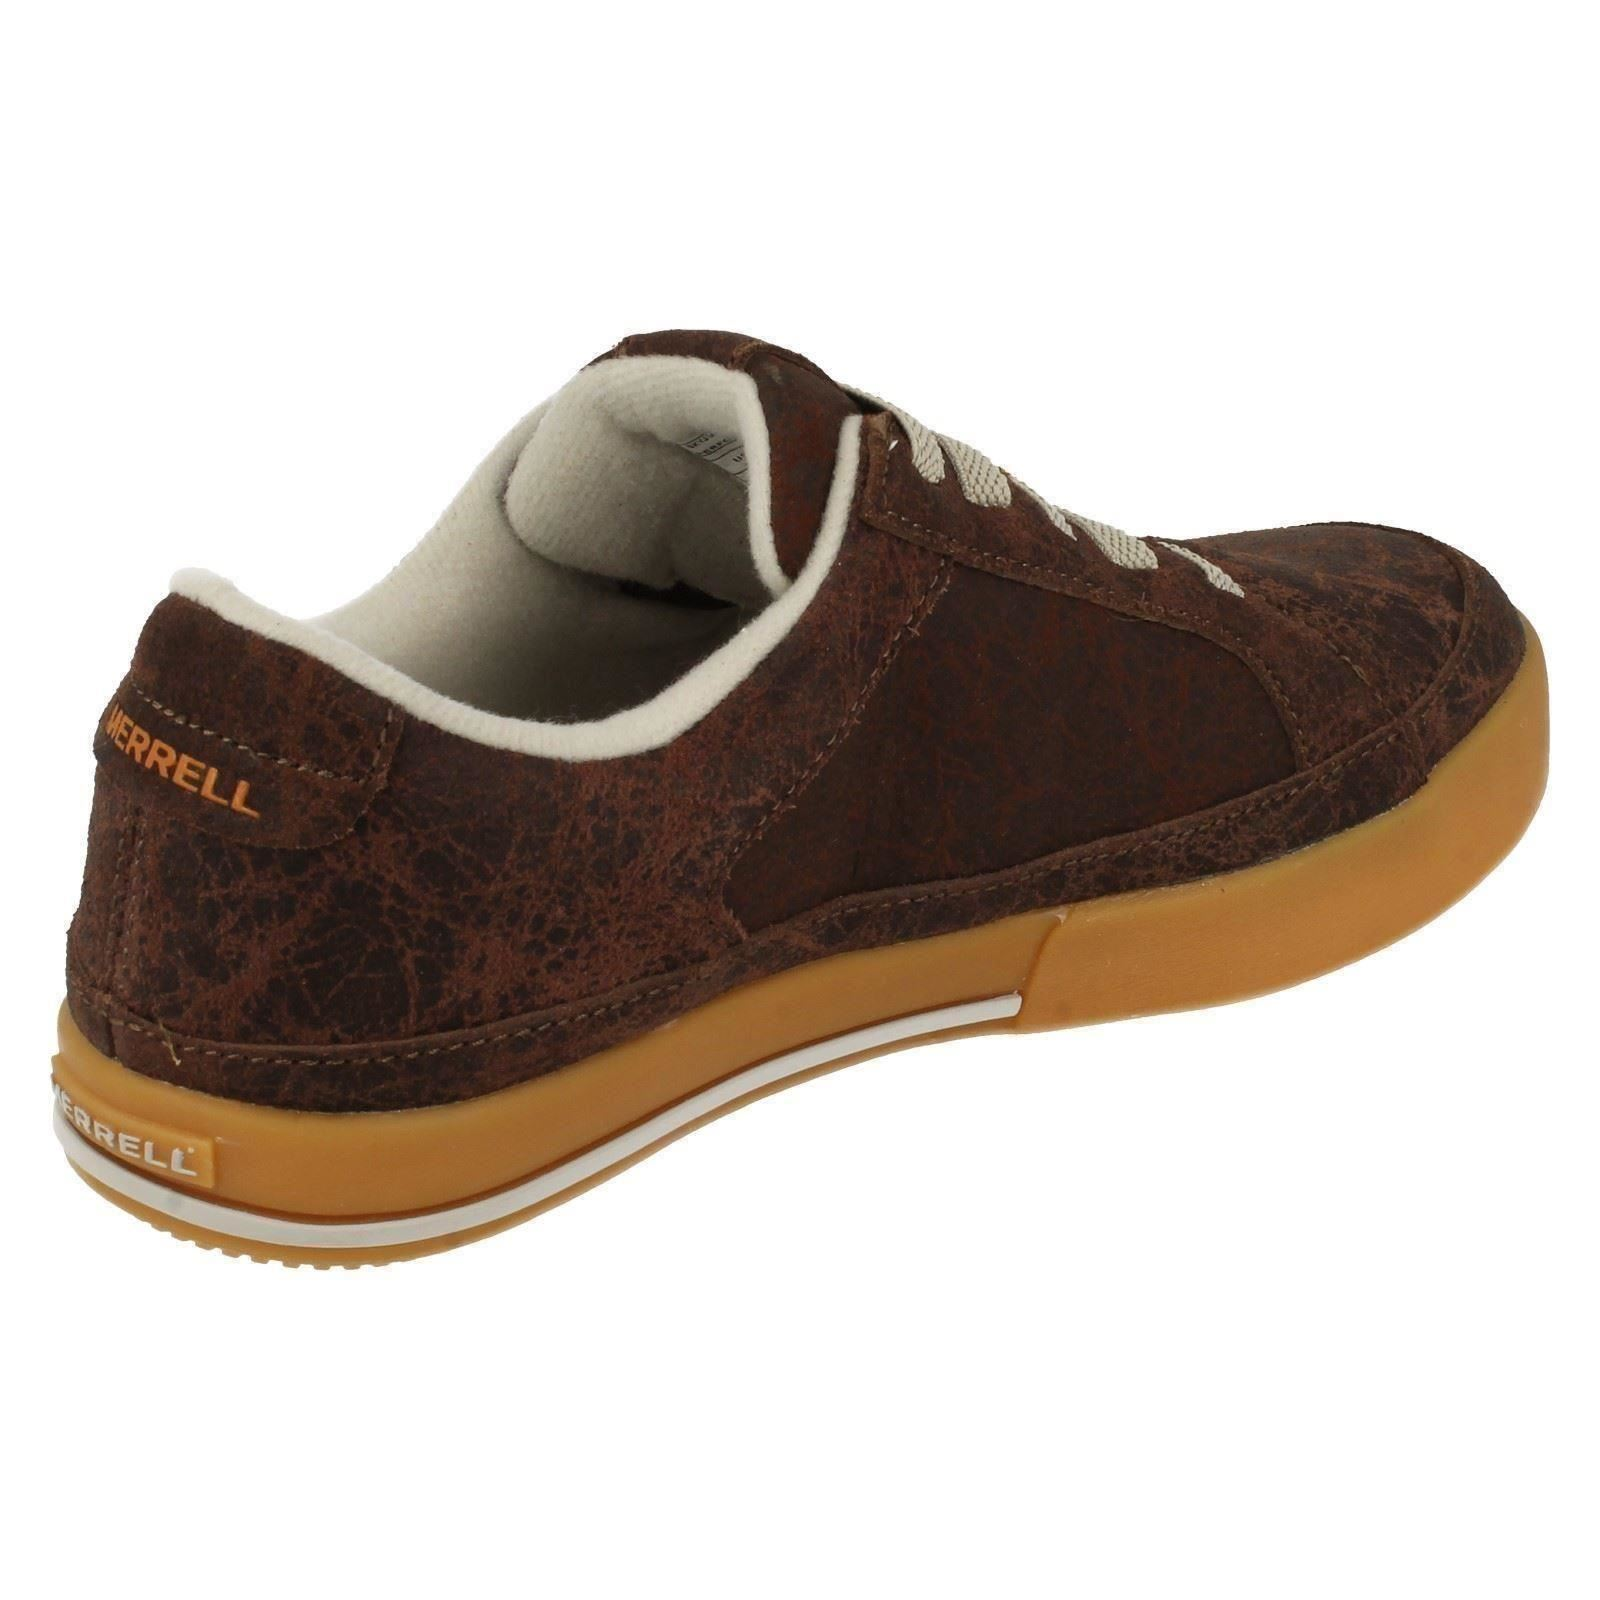 Shop deeply discounted boys' casual shoes on Steep & Cheap while it lasts. Limited time deals up to 70% off.